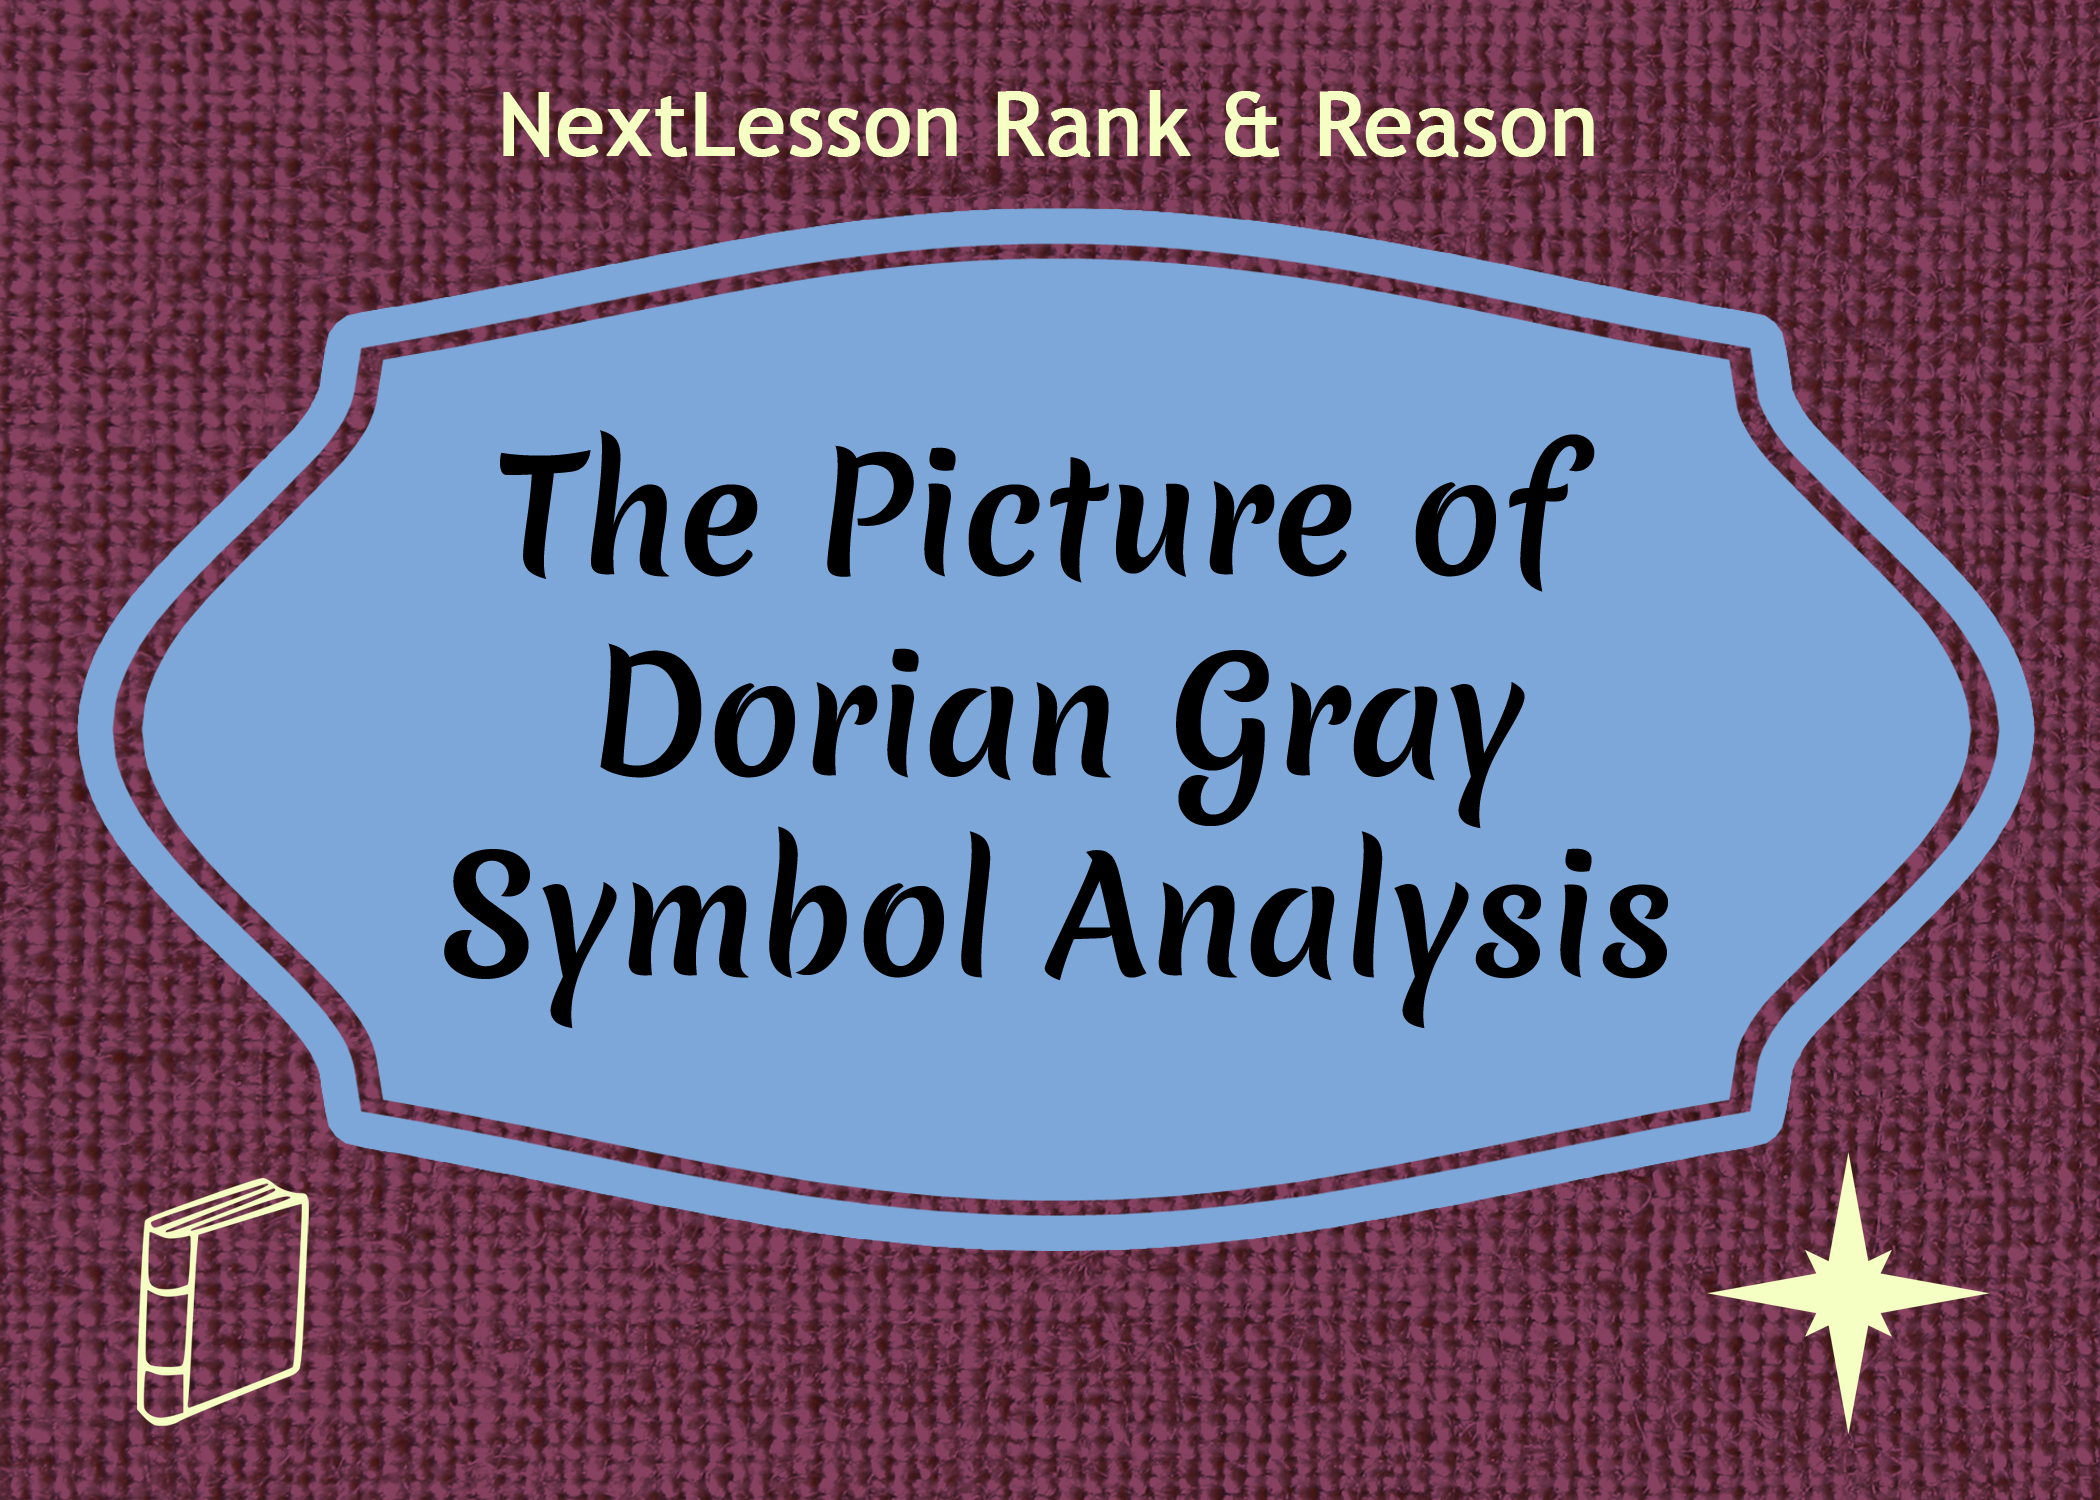 the picture of dorian gray 3 essay Free essay: the book, the picture of dorian gray by oscar wilde is one that has many purposes in it one purpose in the book shows how individuals can slowly.